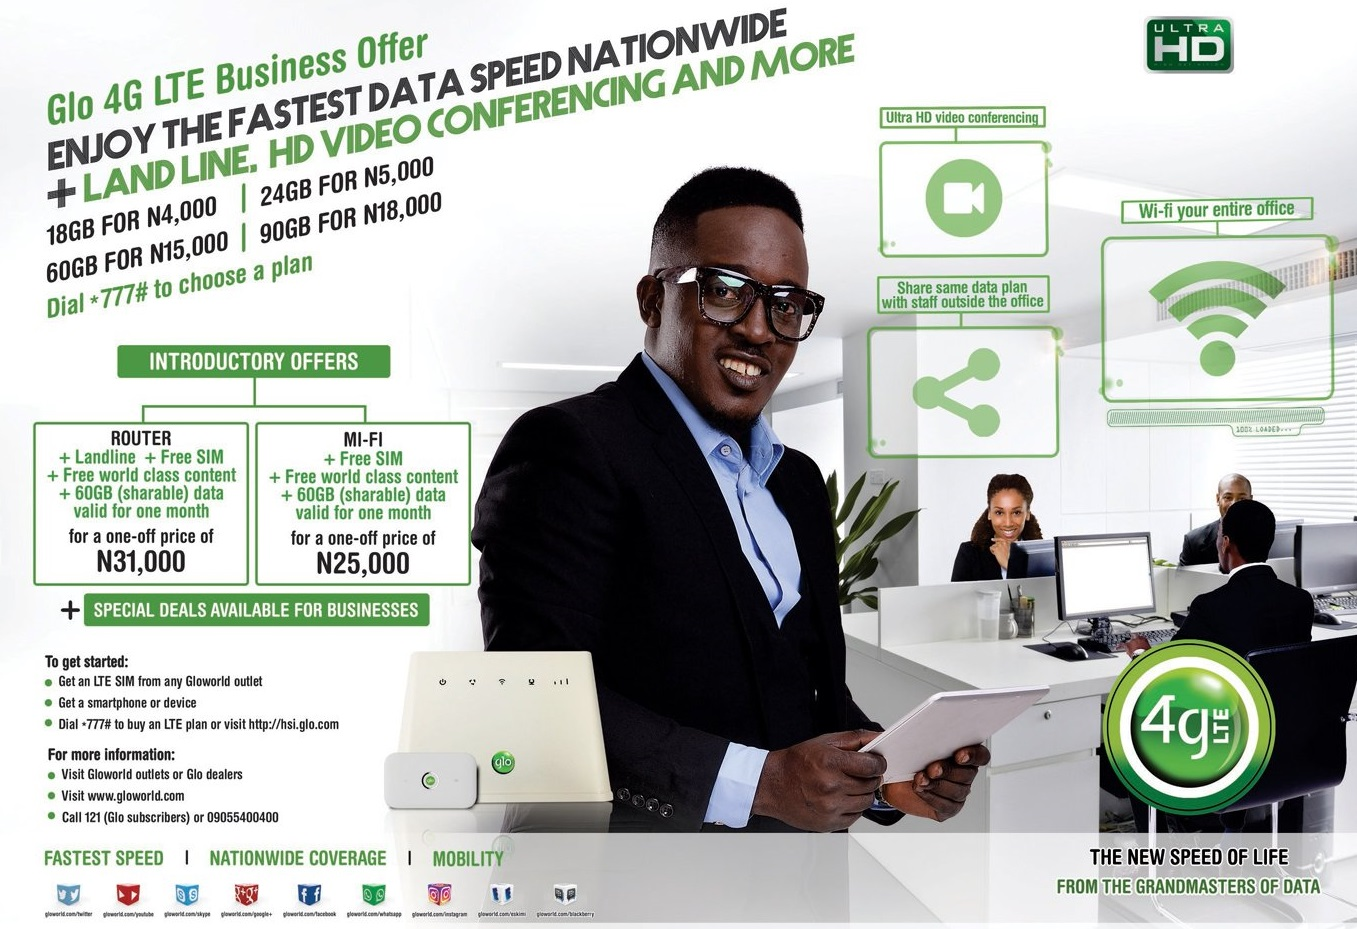 GLO 4G: Code to Check Phone LTE Compatibility & Steps to